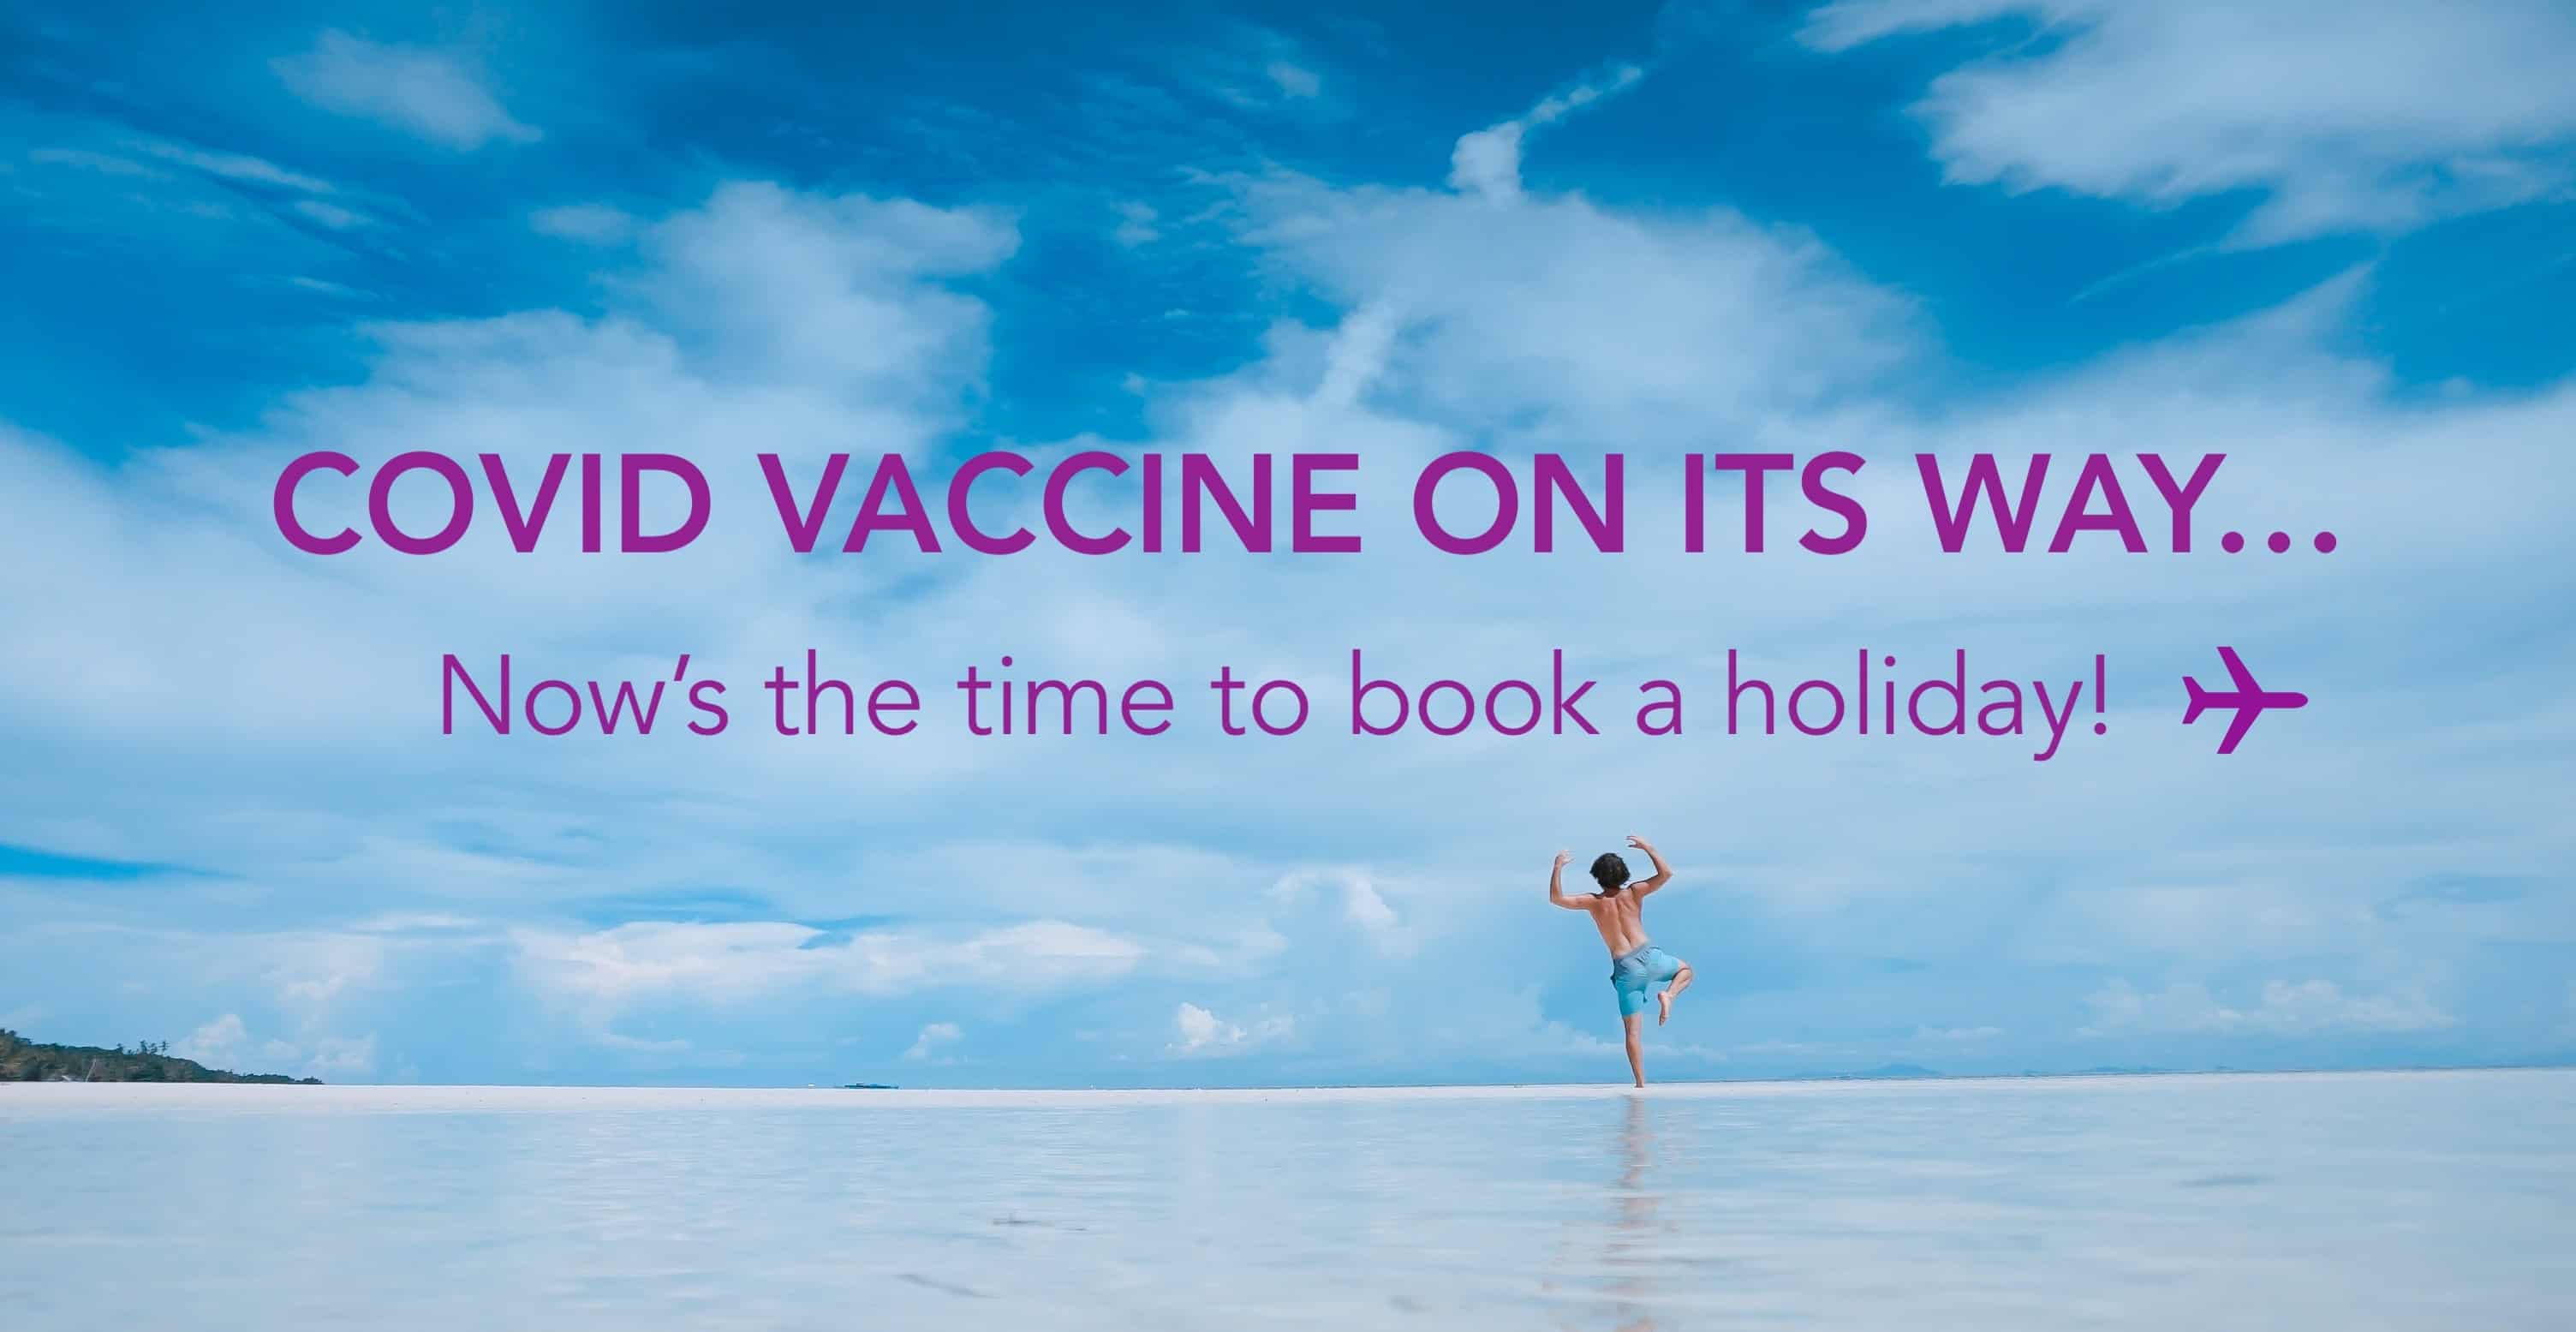 Covid vaccine on it's way...Now's the time to book a holiday!